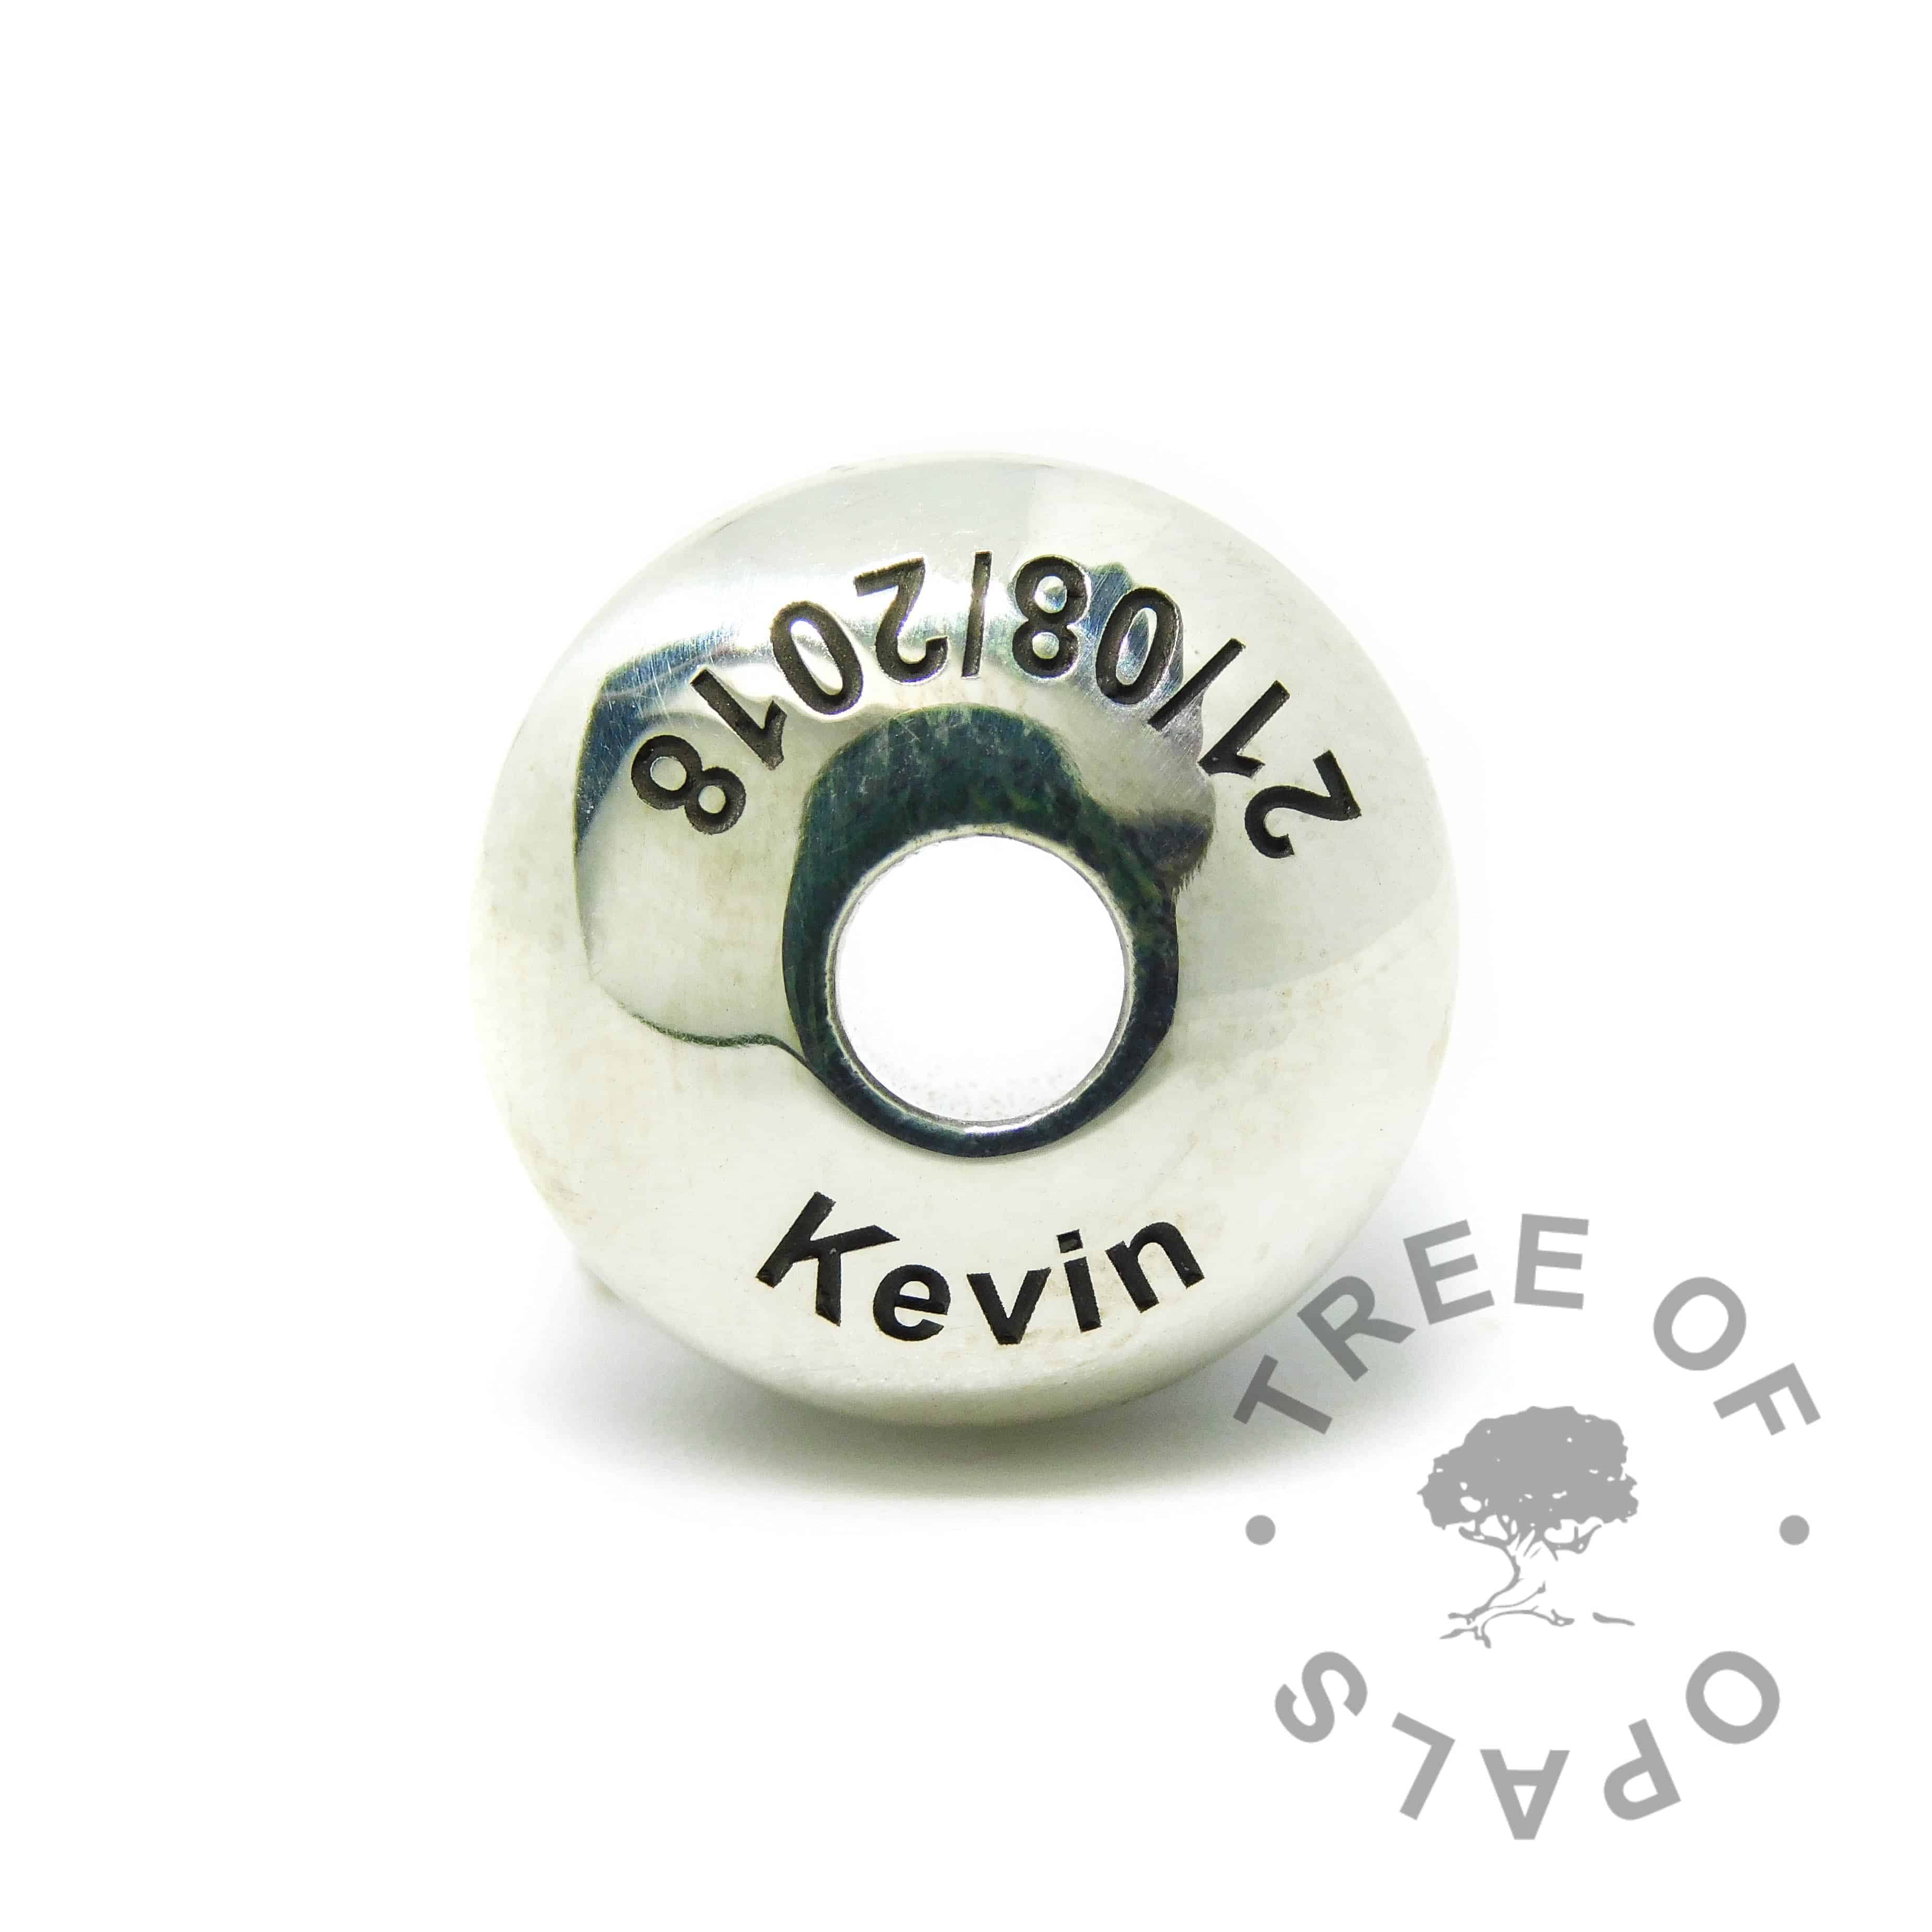 Arial font engraved  charm washer. Handmade with solid sterling EcoSilver, 925 stamped on the back. Watermarked copyright Tree of Opals memorial jewellery image